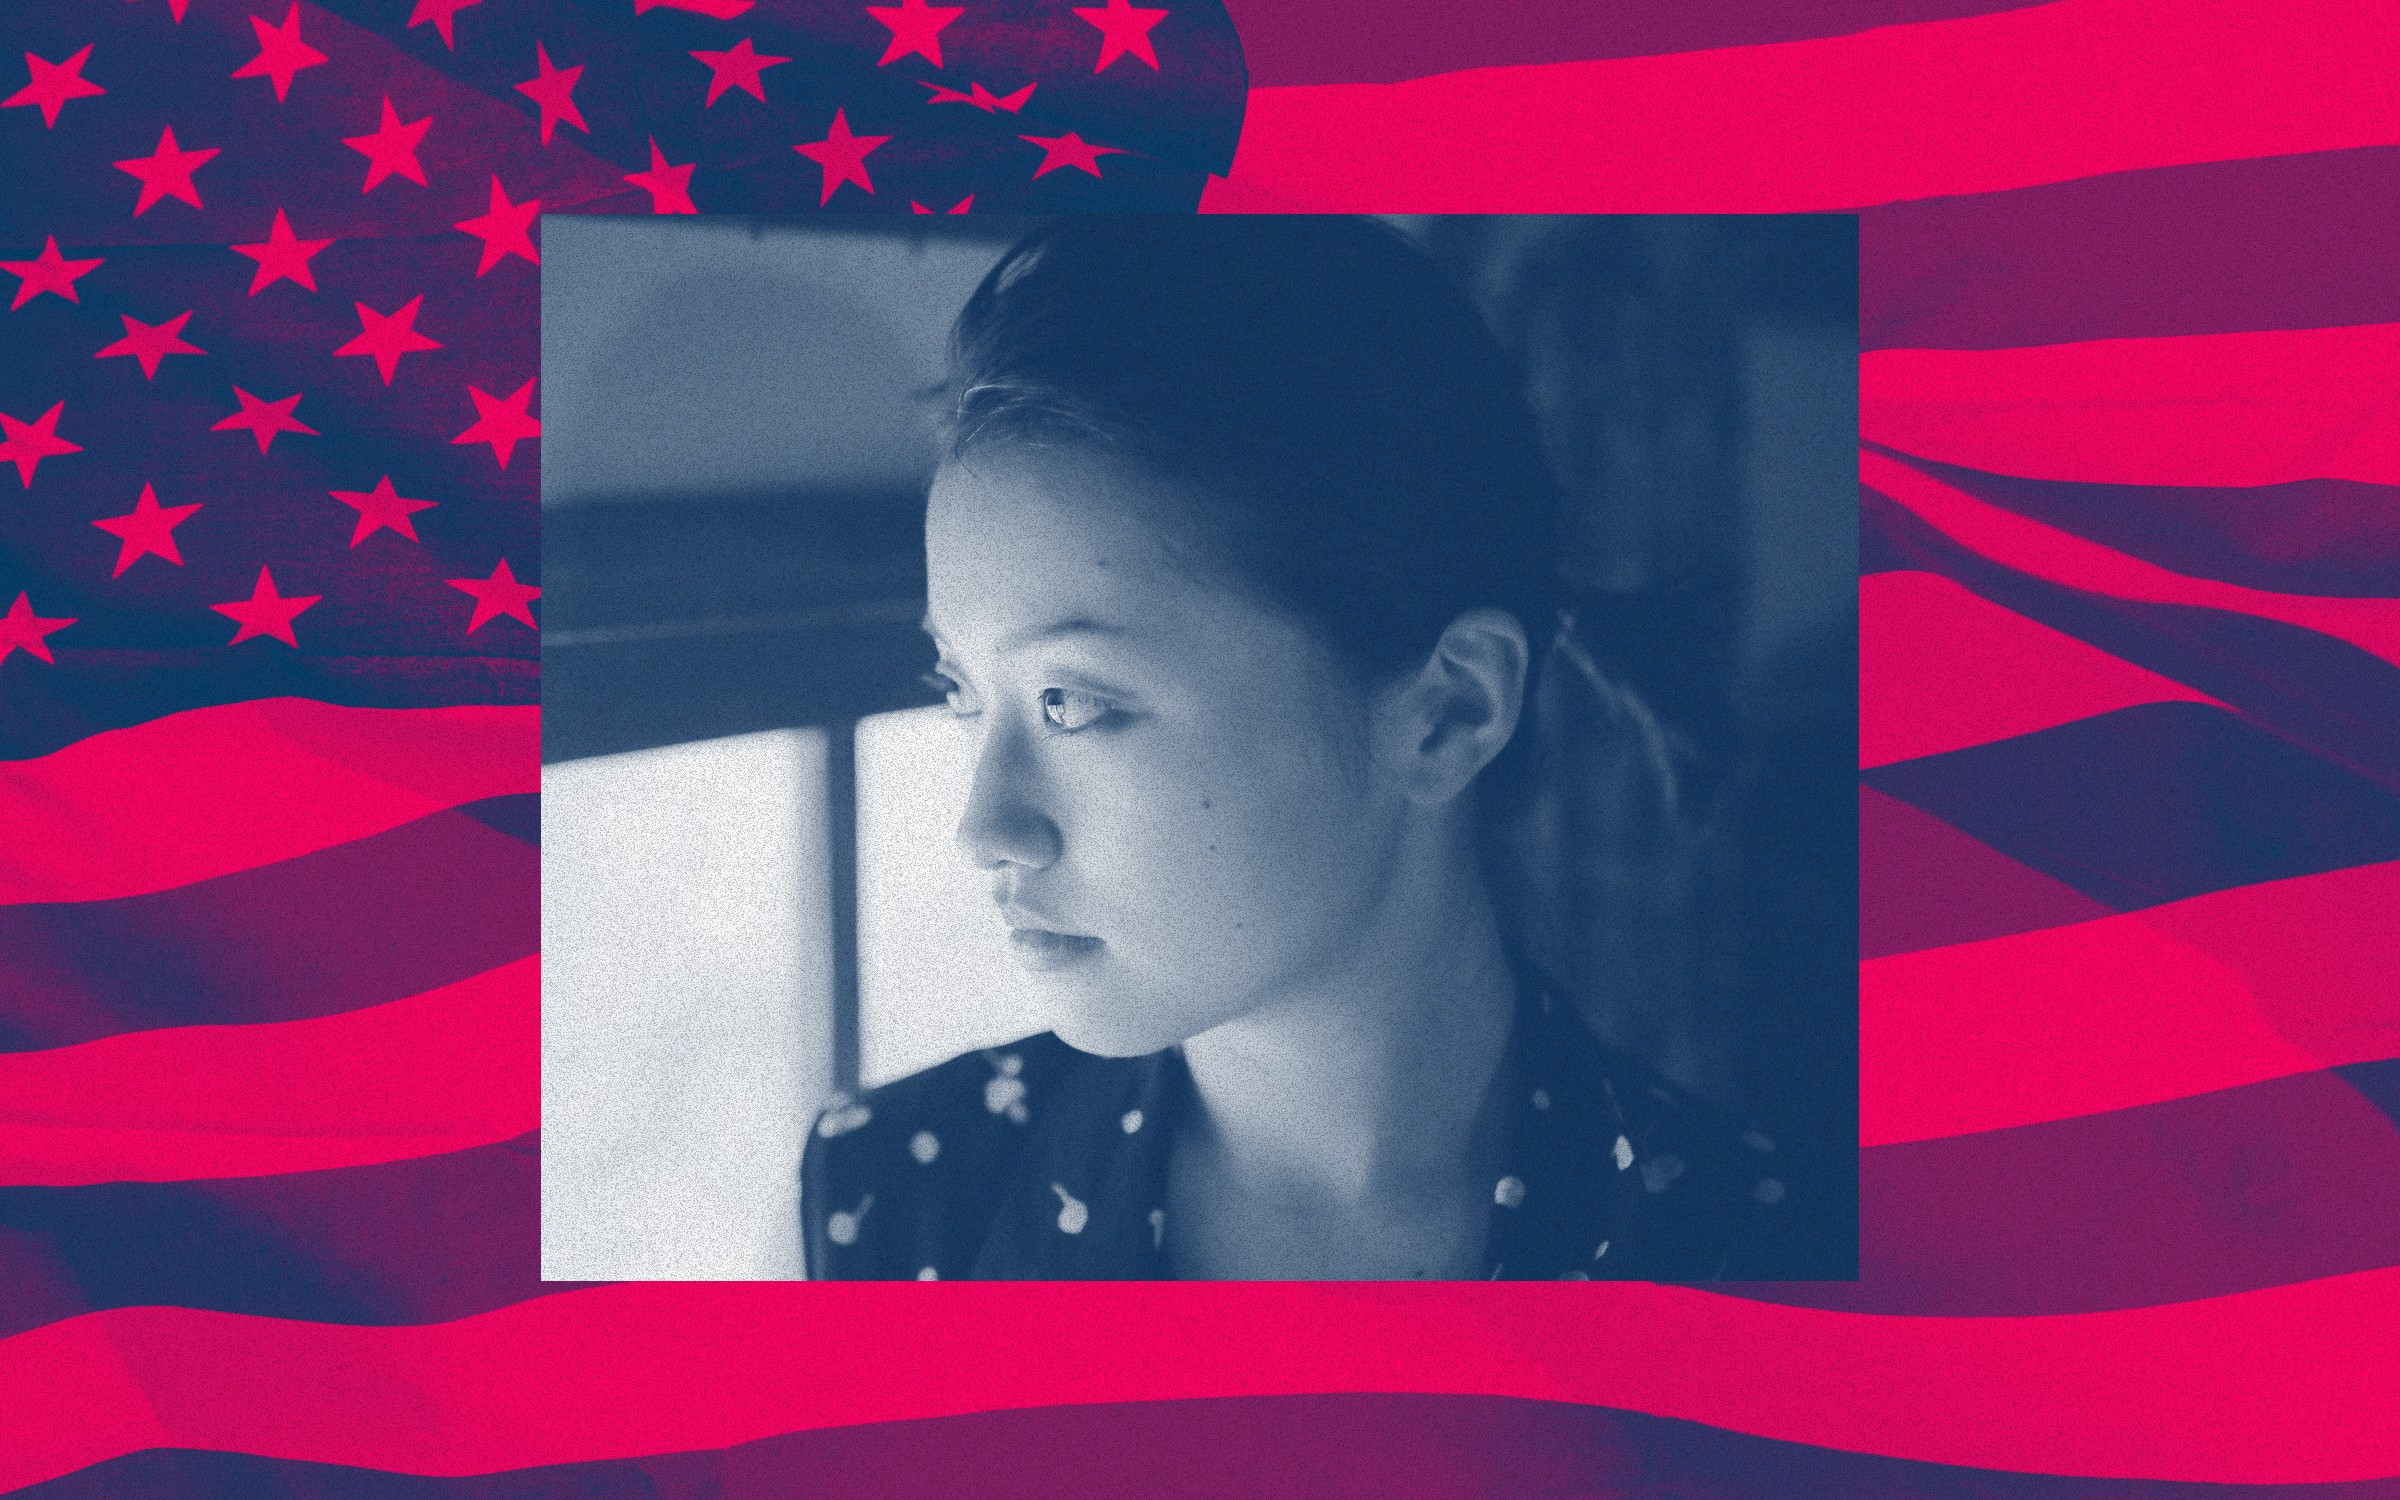 Closeup of an Asian woman's face against a filtered American flag background.